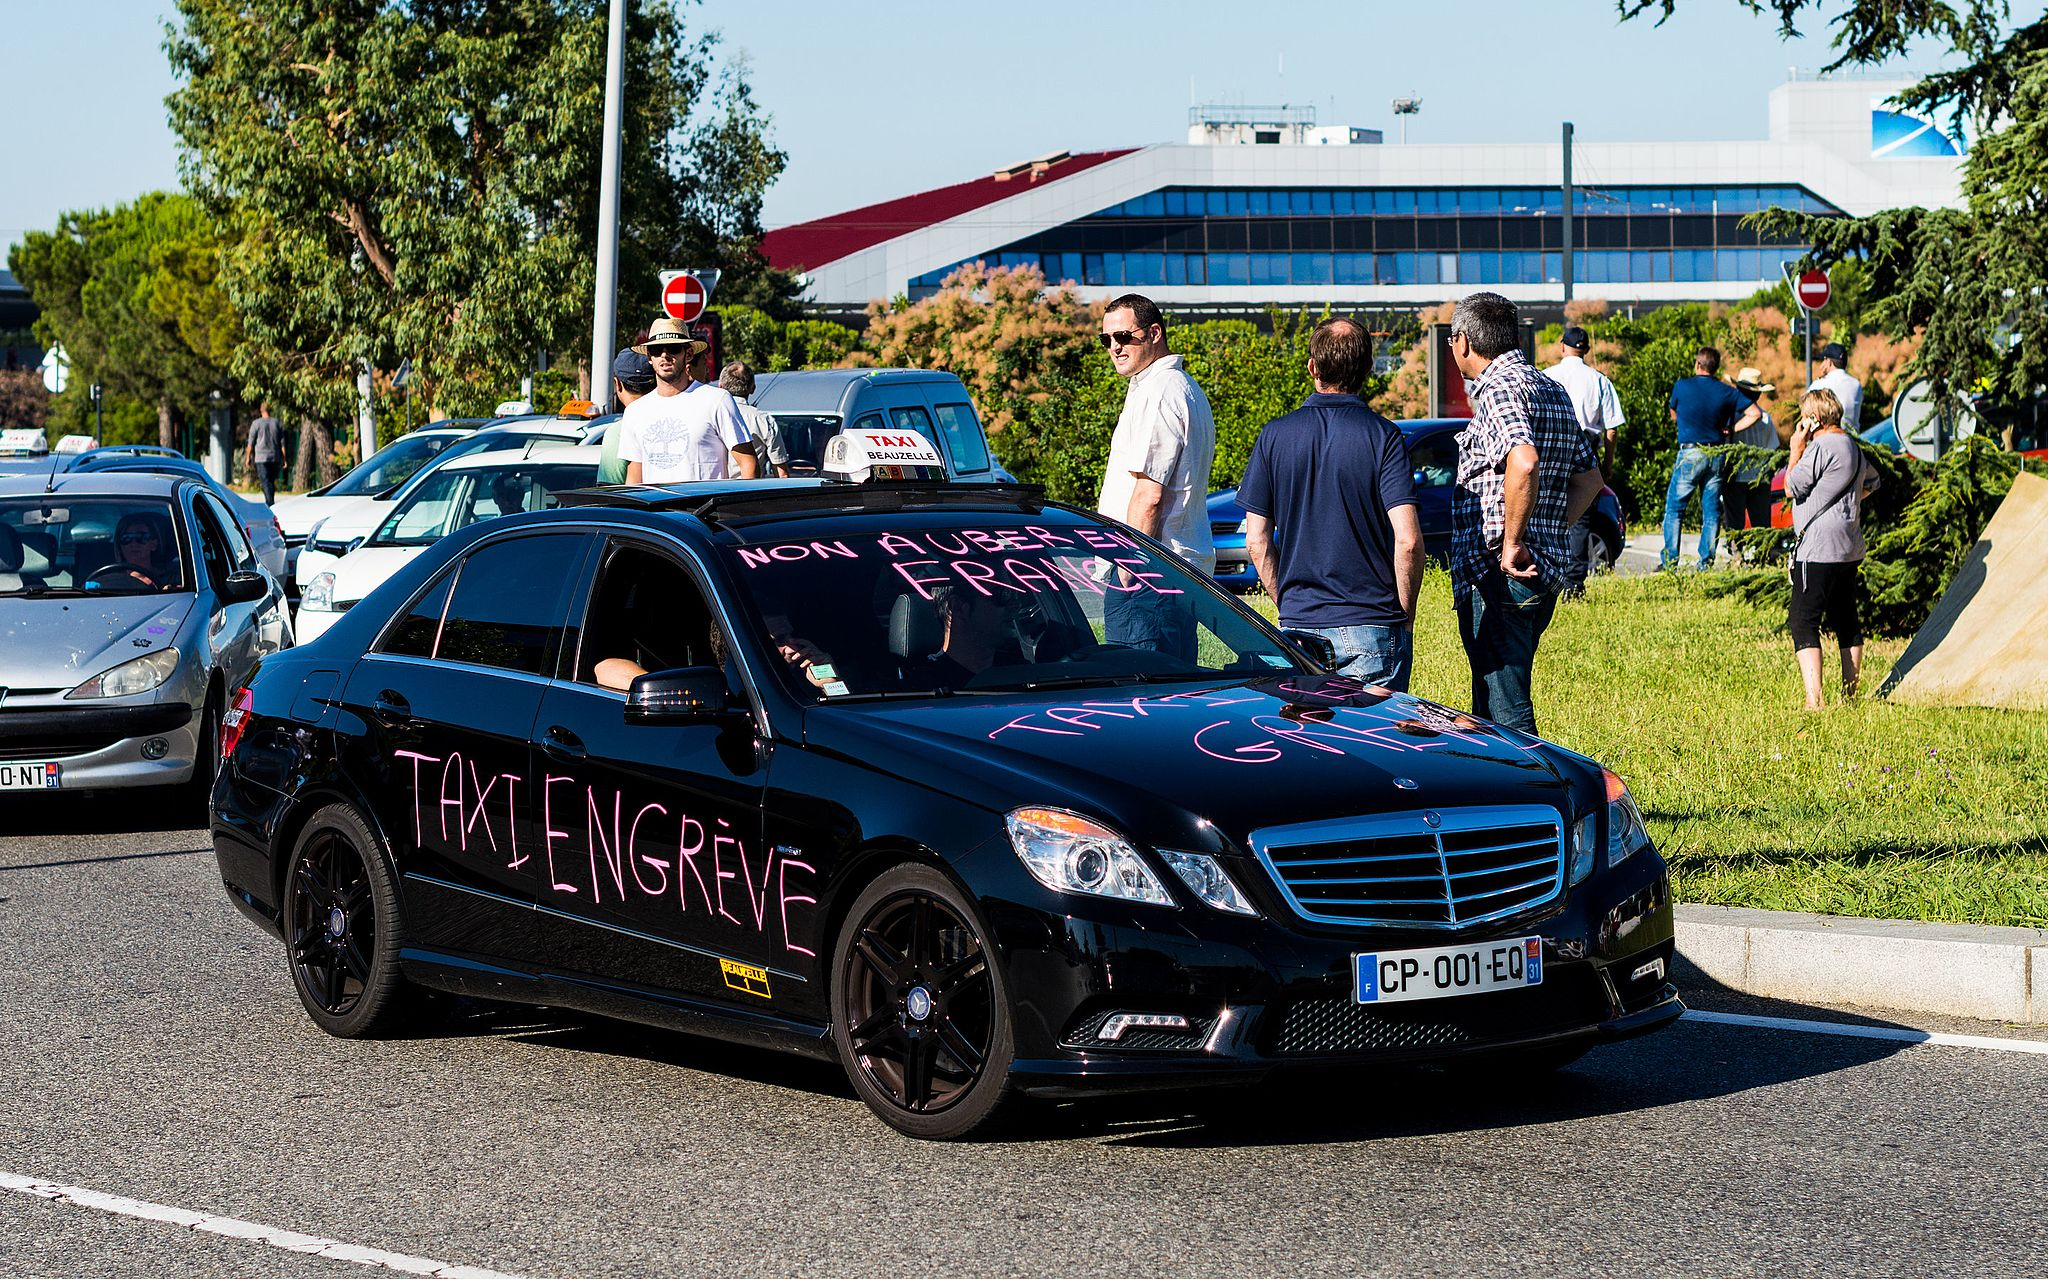 Taxis_contre_Uber,_juin_2015,_Toulouse-1